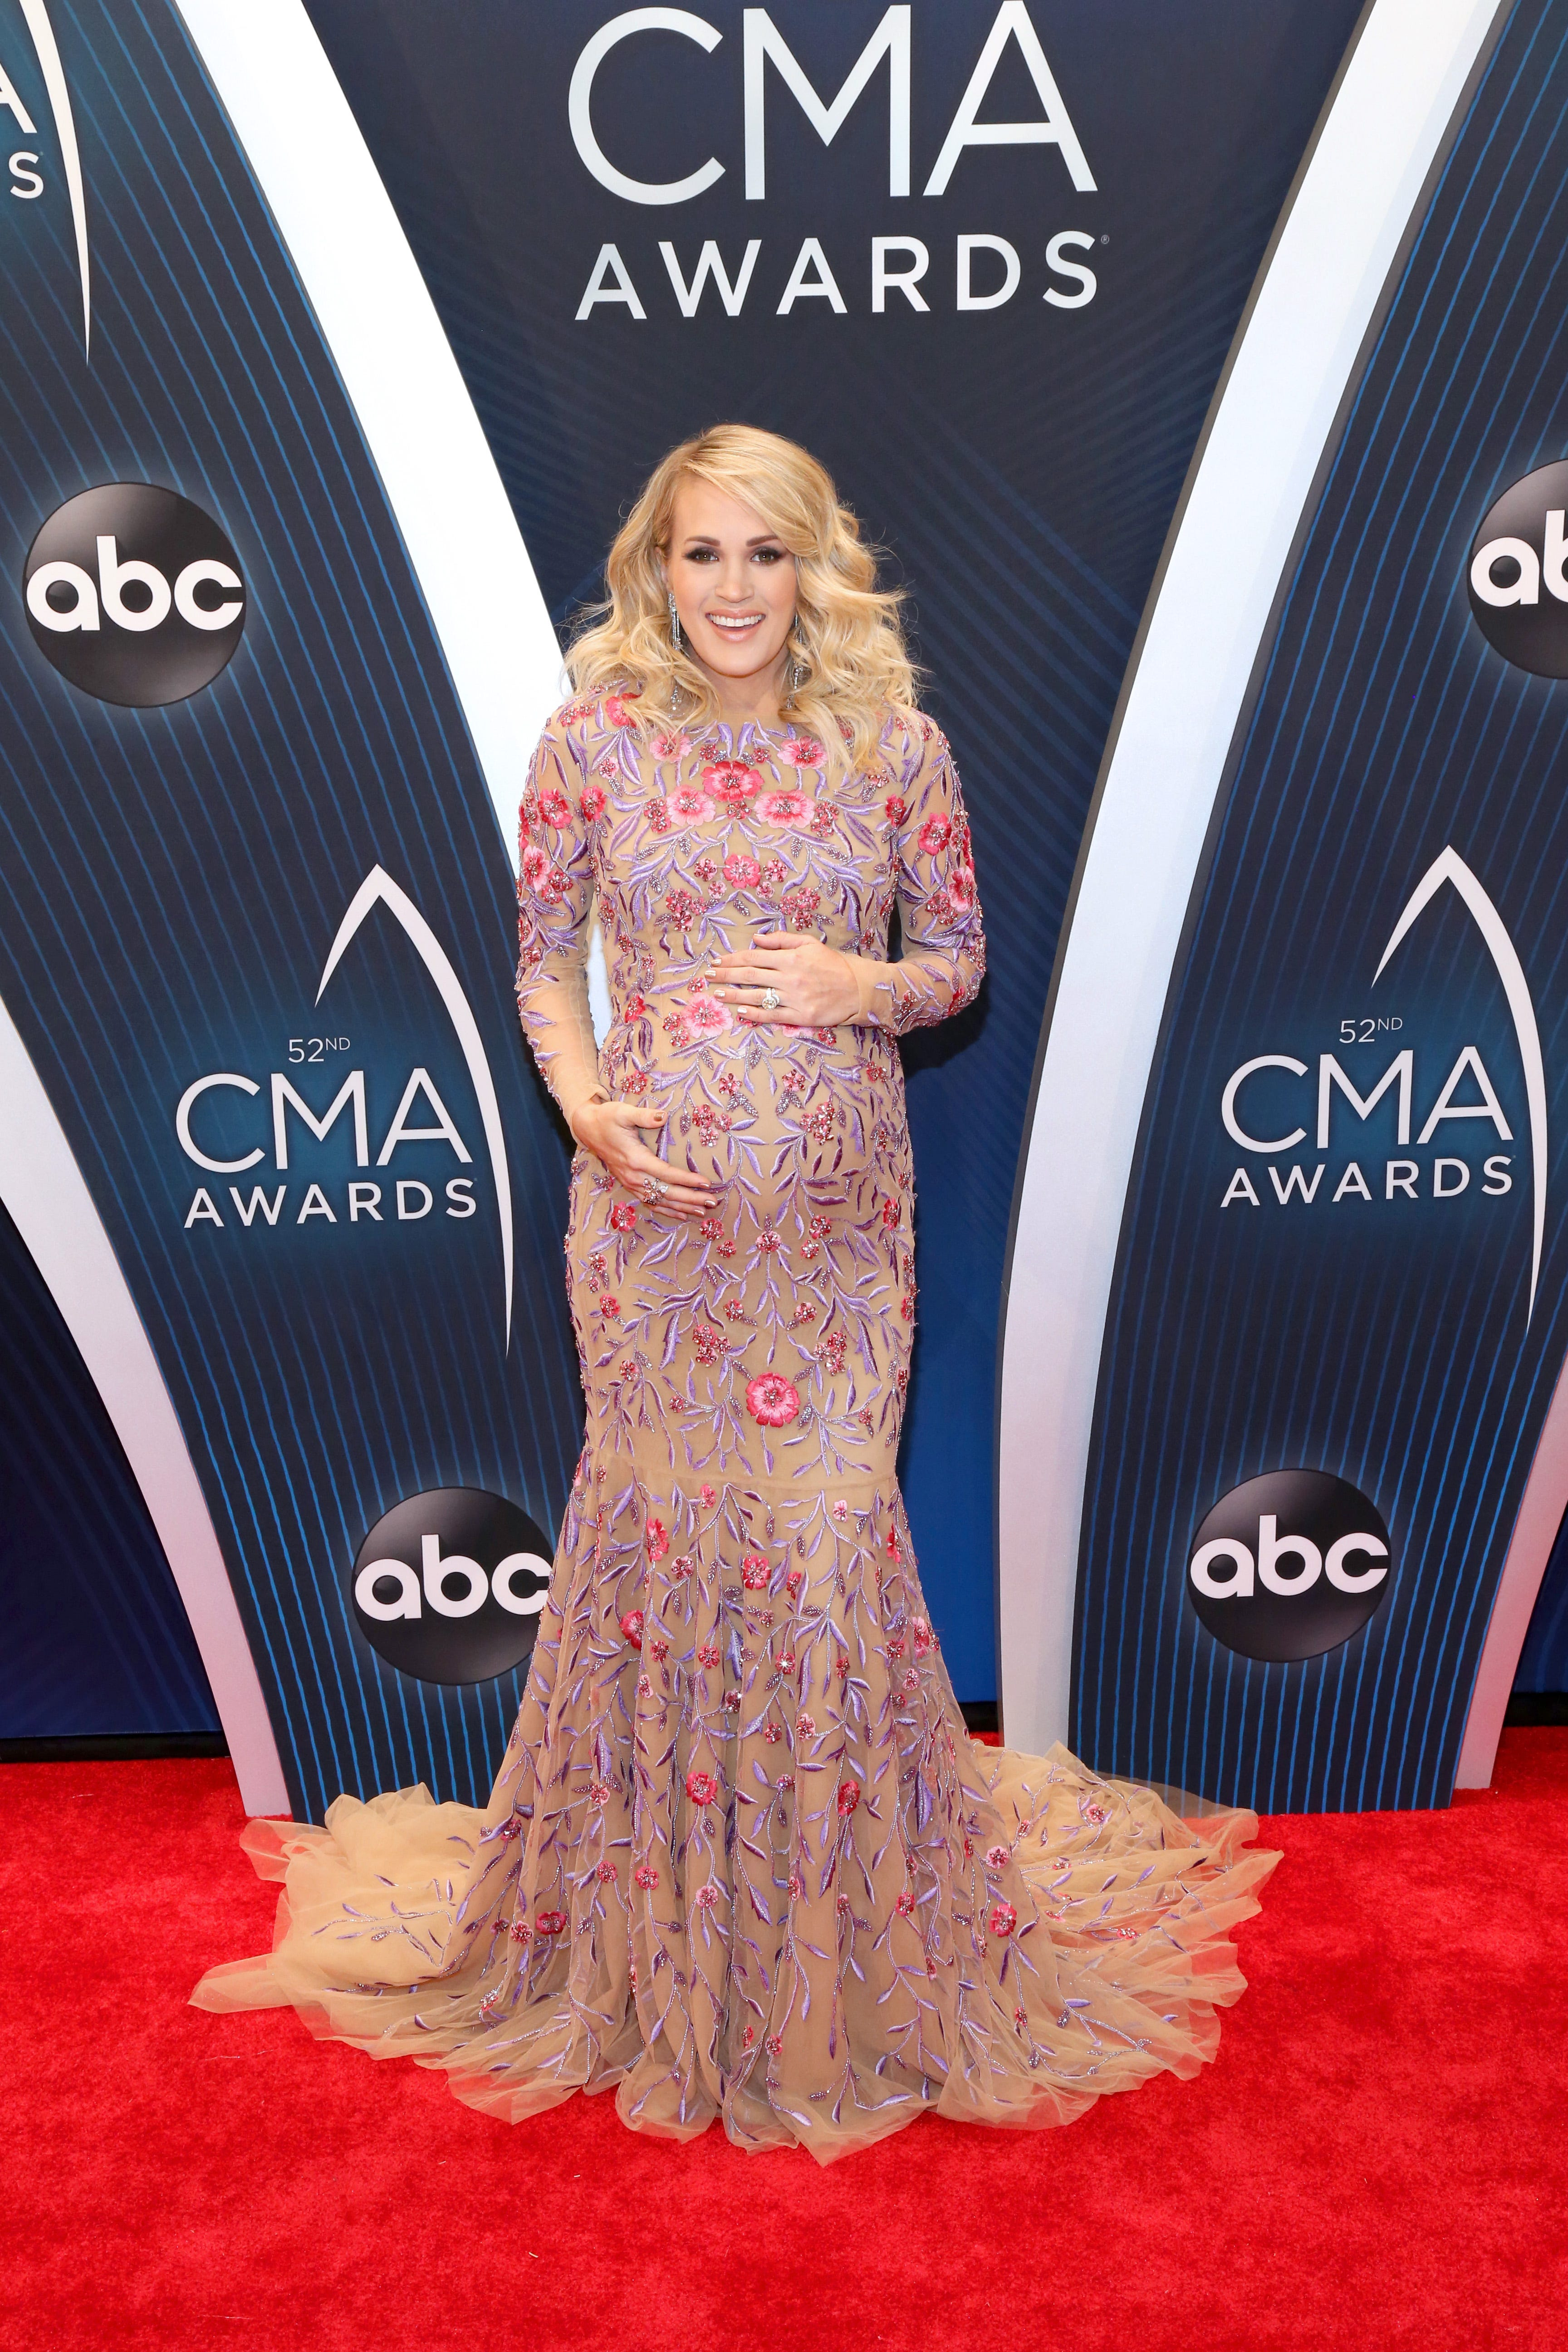 42. Carrie Underwood 42. Carrie Underwood new picture